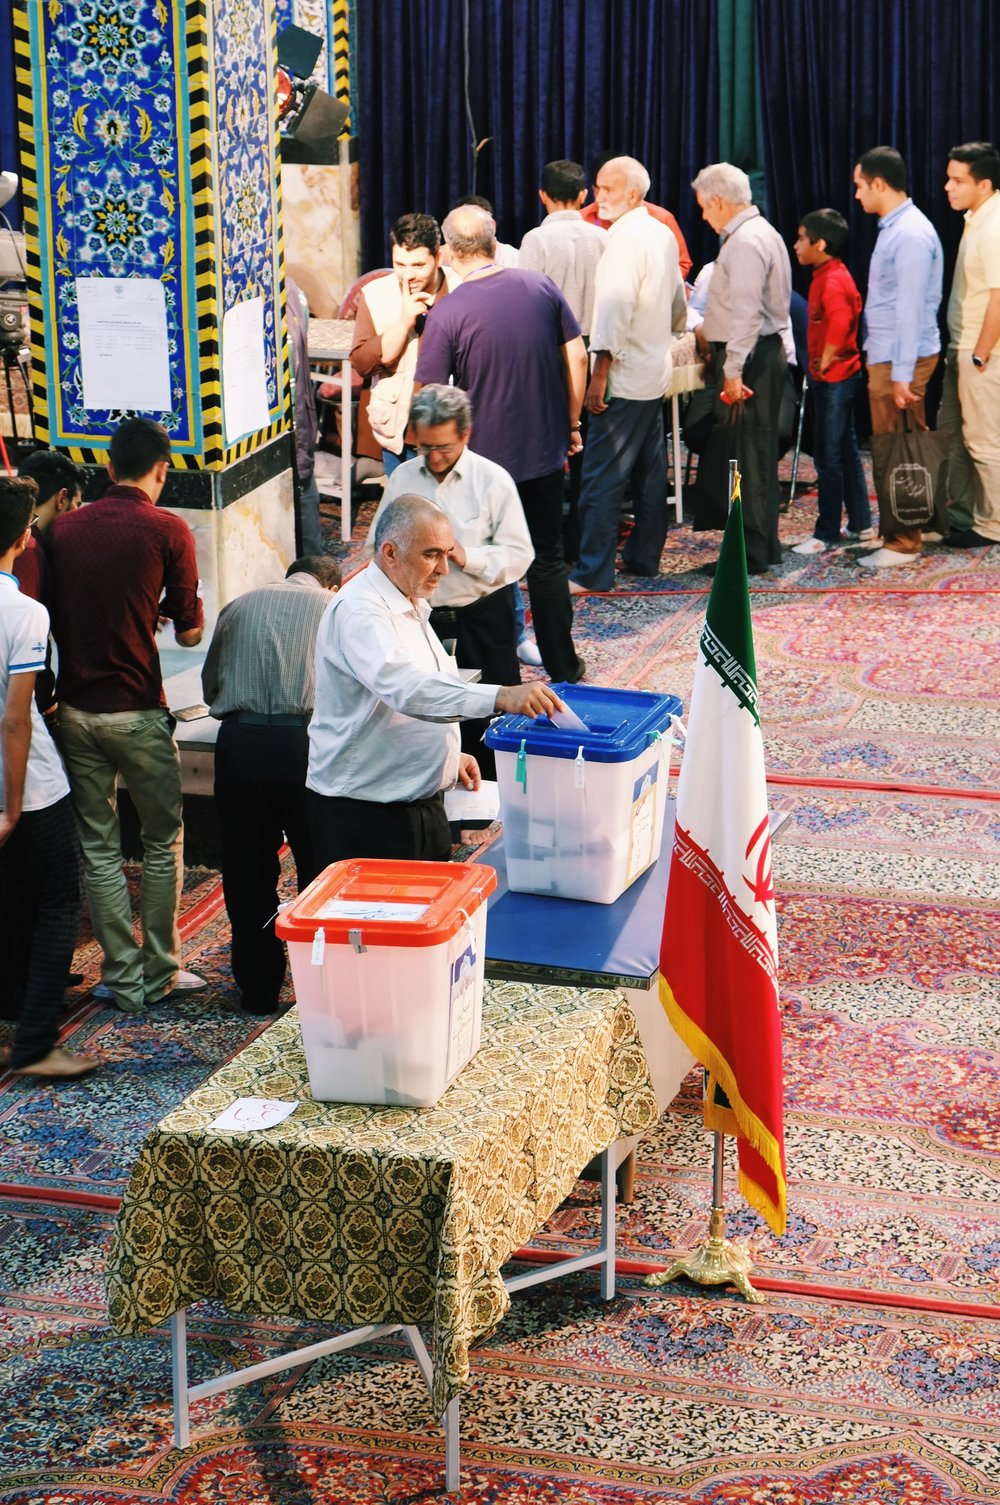 Iran Elections in Yazd by Joost Bastmeijer.jpeg